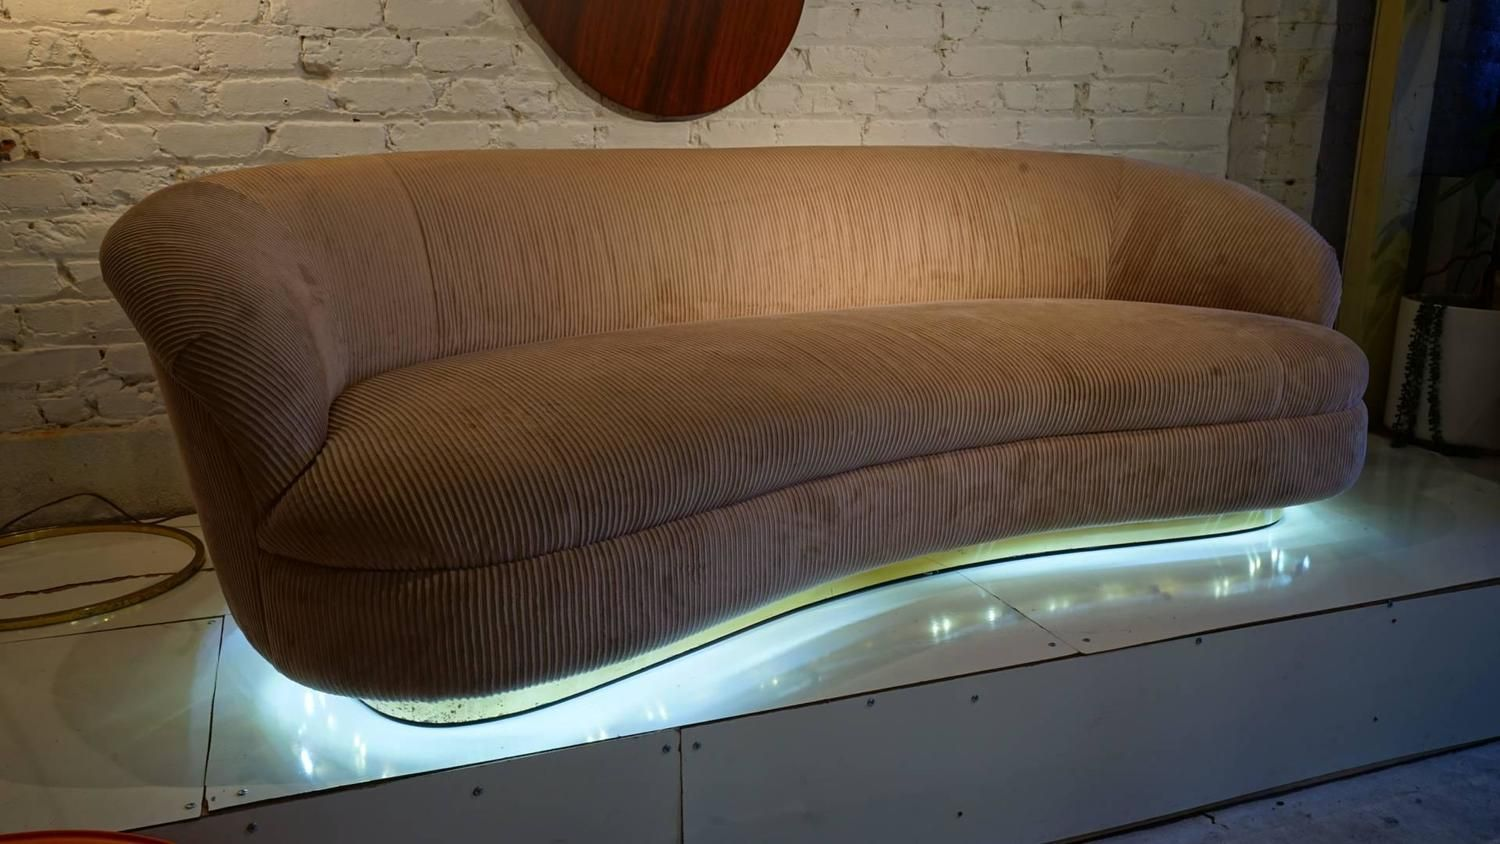 Beau Exquisite Biomorphic Kidney Bean Shaped Sofa By Vladimir Kagan For  Directional Image 3